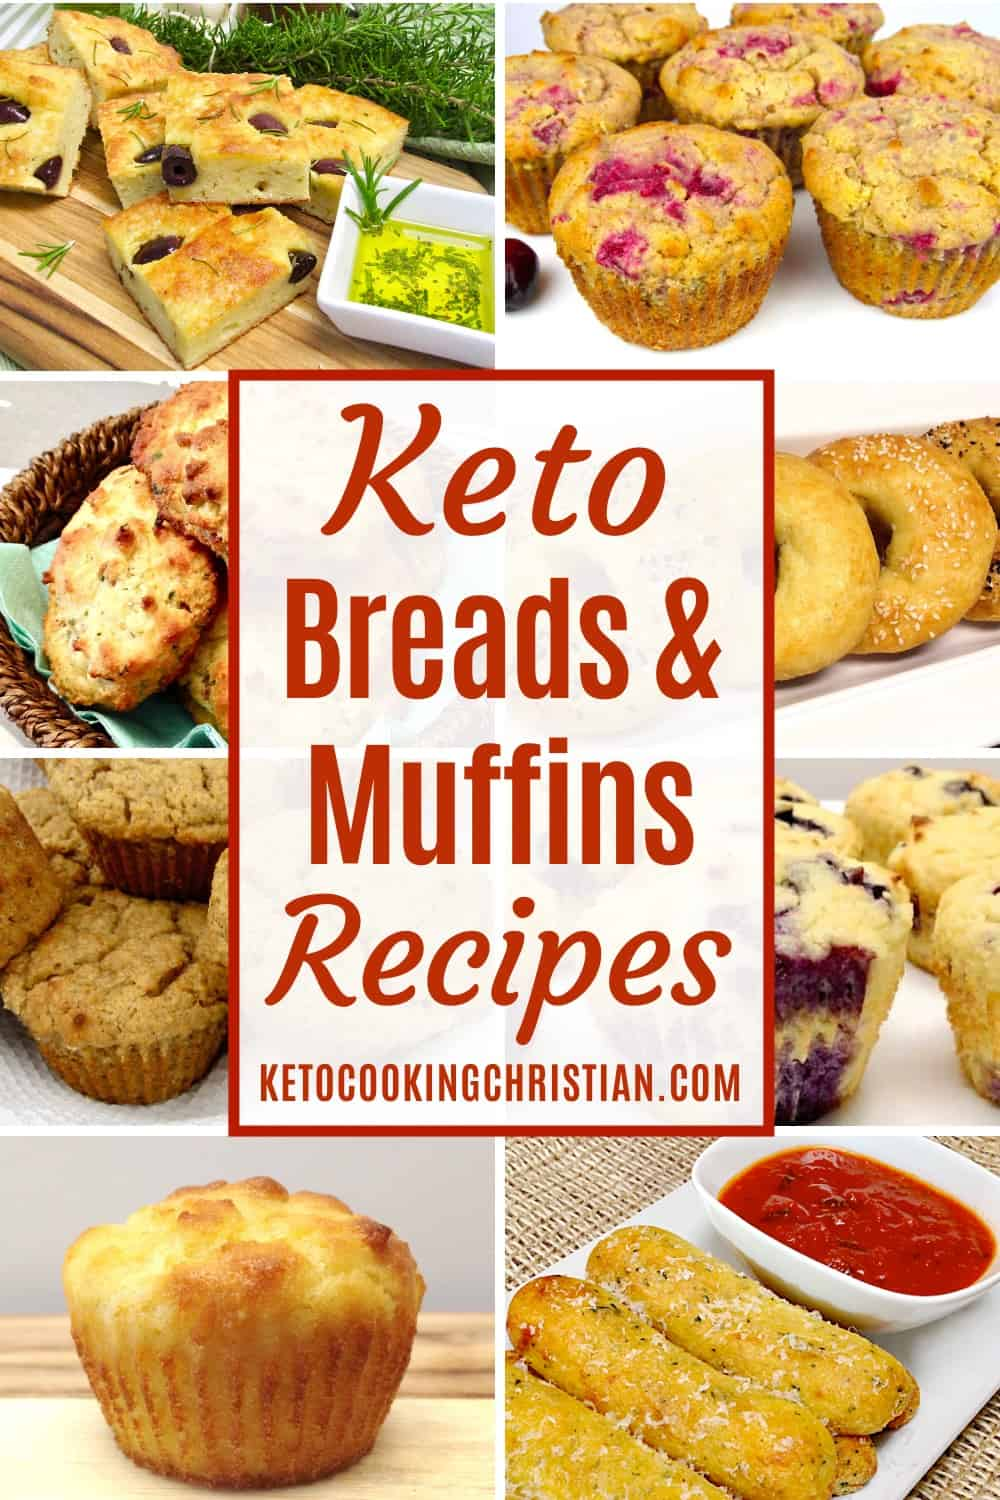 PIN Keto Breads & Muffins Recipes